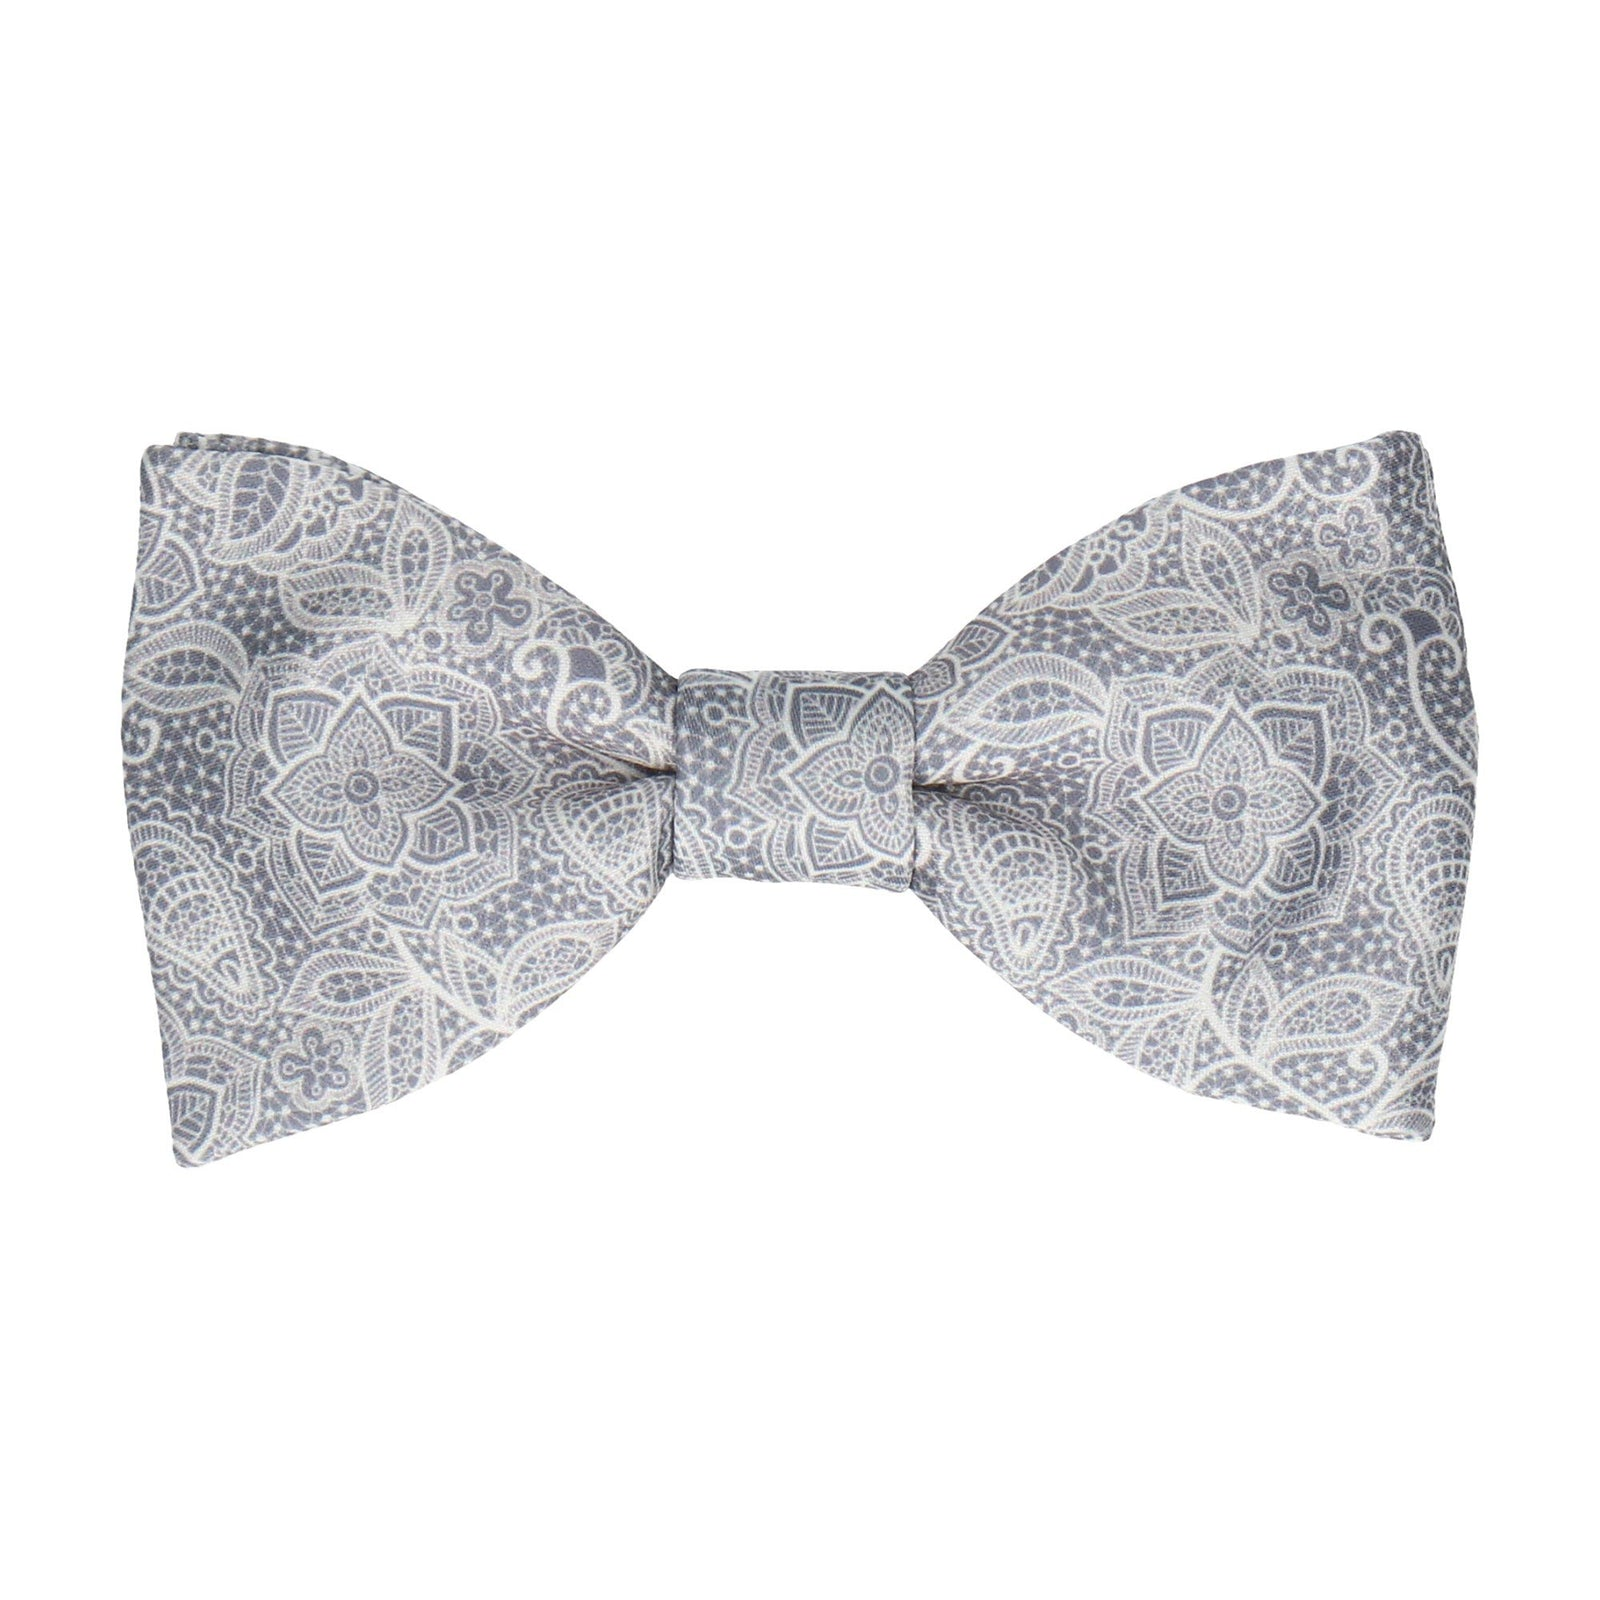 Intricate Dark Grey Floral Lace Print Bow Tie